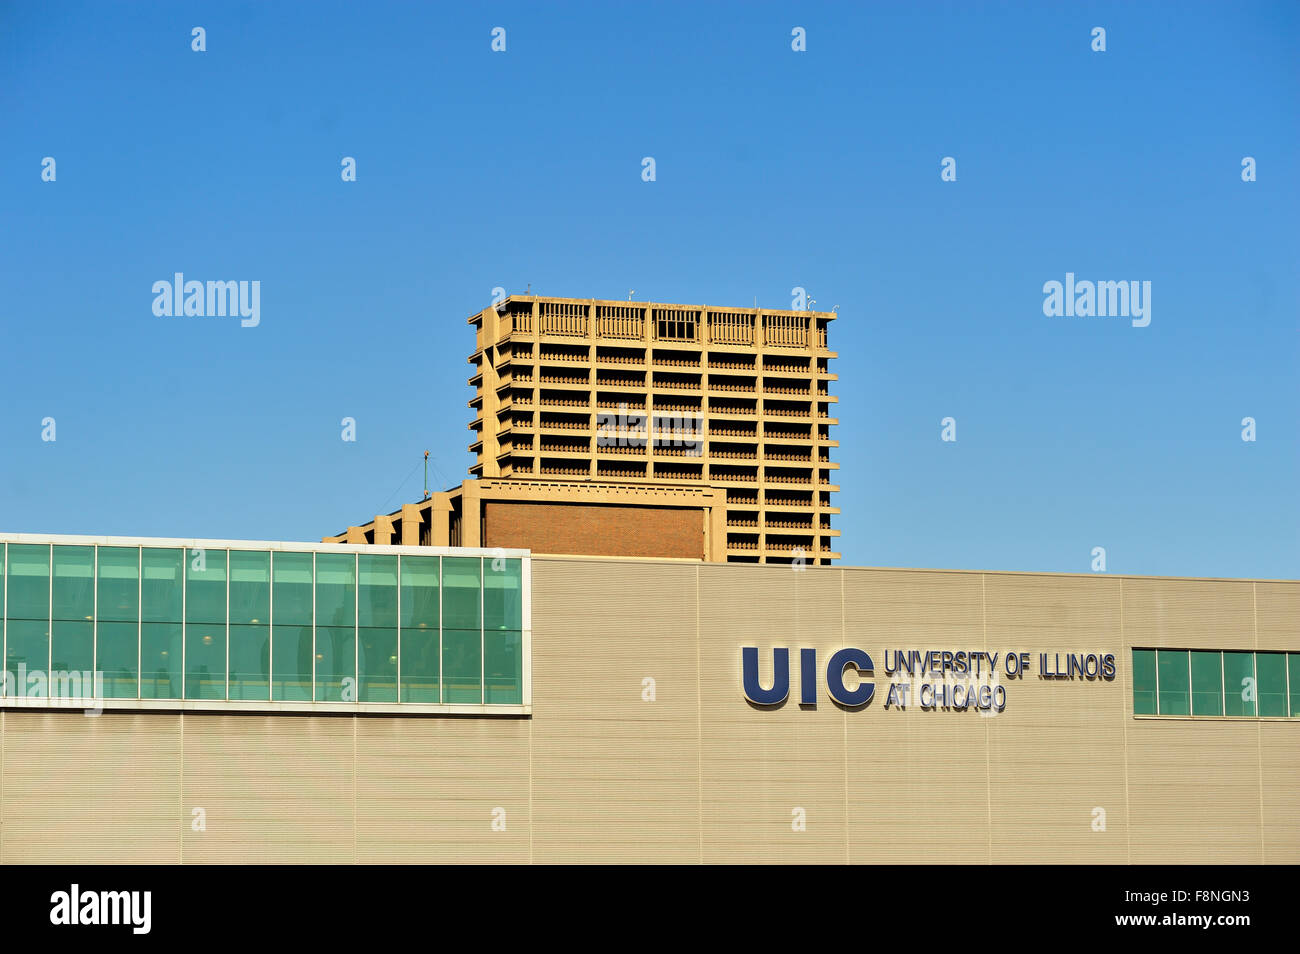 The University of Illinois at Chicago, so named since 1982, is located just southwest of the Loop. Chicago, Illinois, - Stock Image